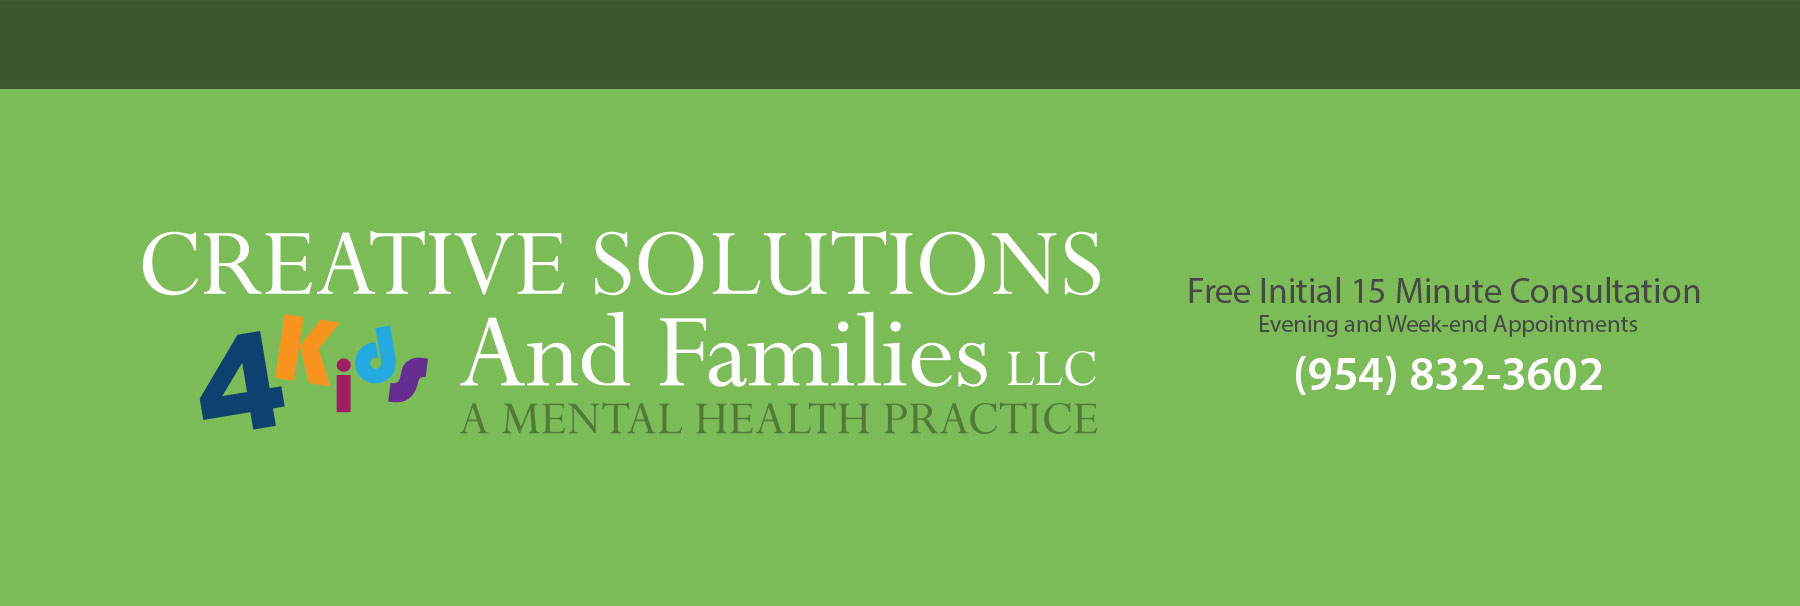 reative Solutions 4 Kids & Families